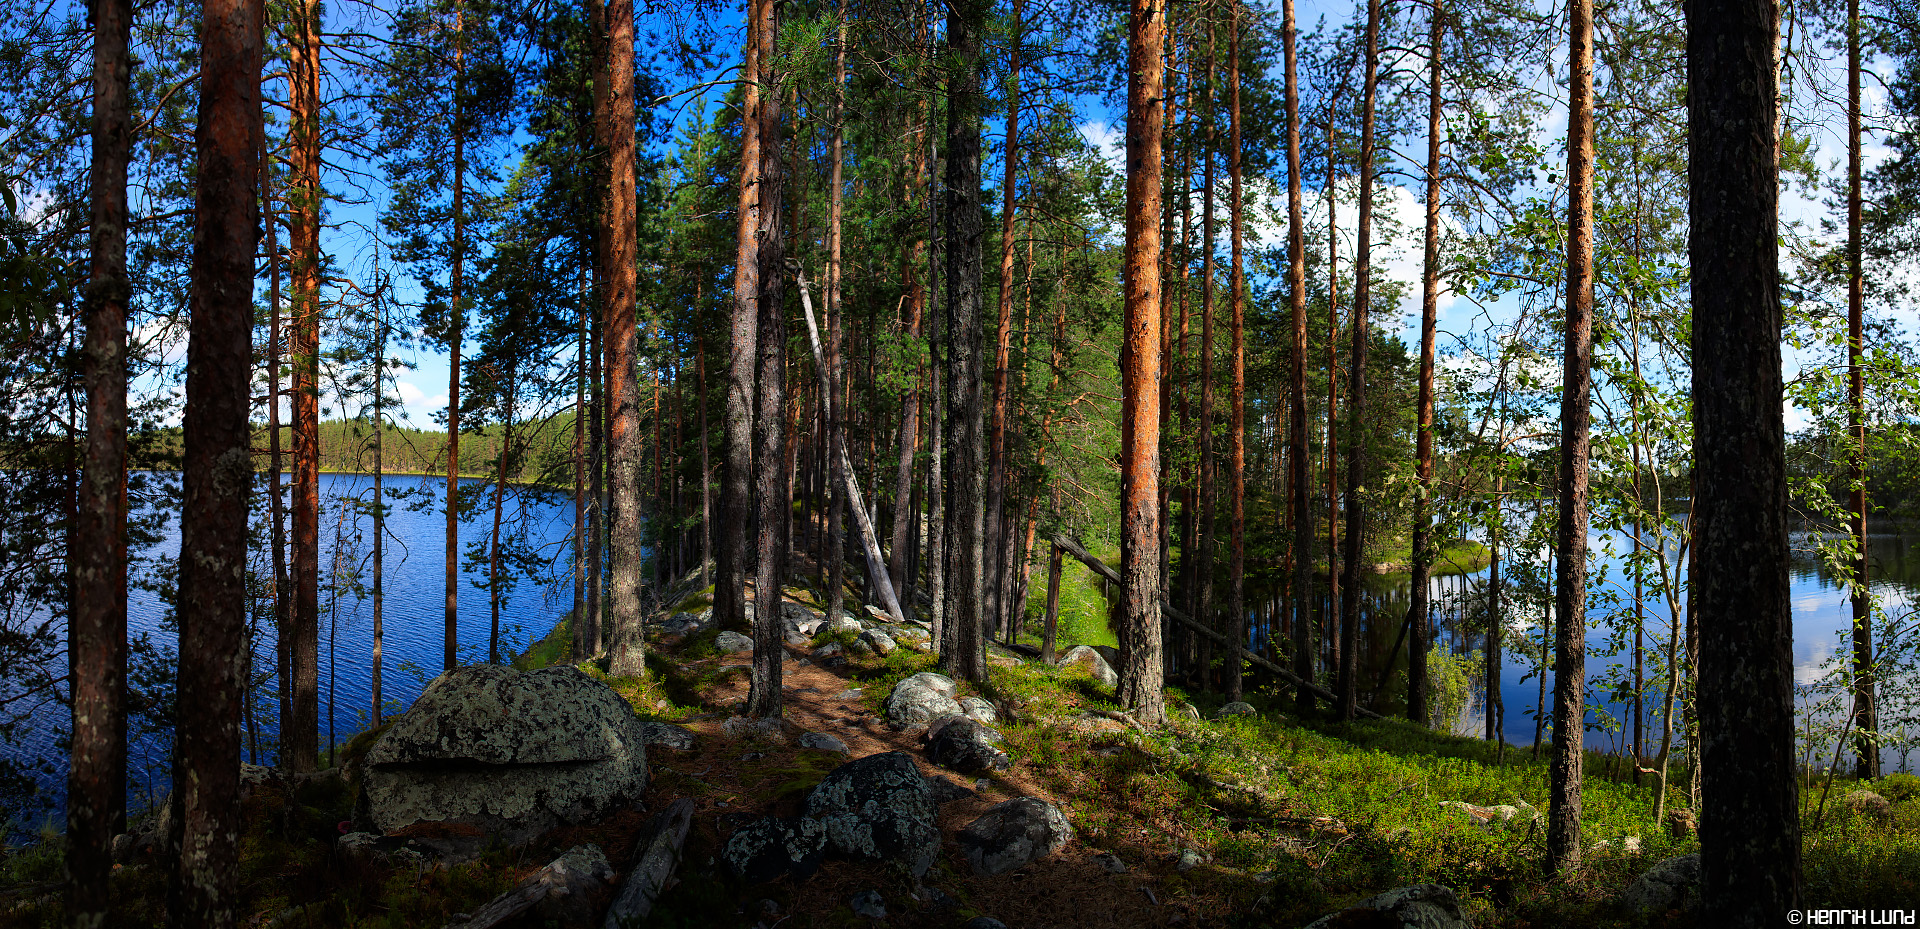 Handheld panorama taken in Petkeljärvi National park, Ilomantsi, Finland. August 2016.